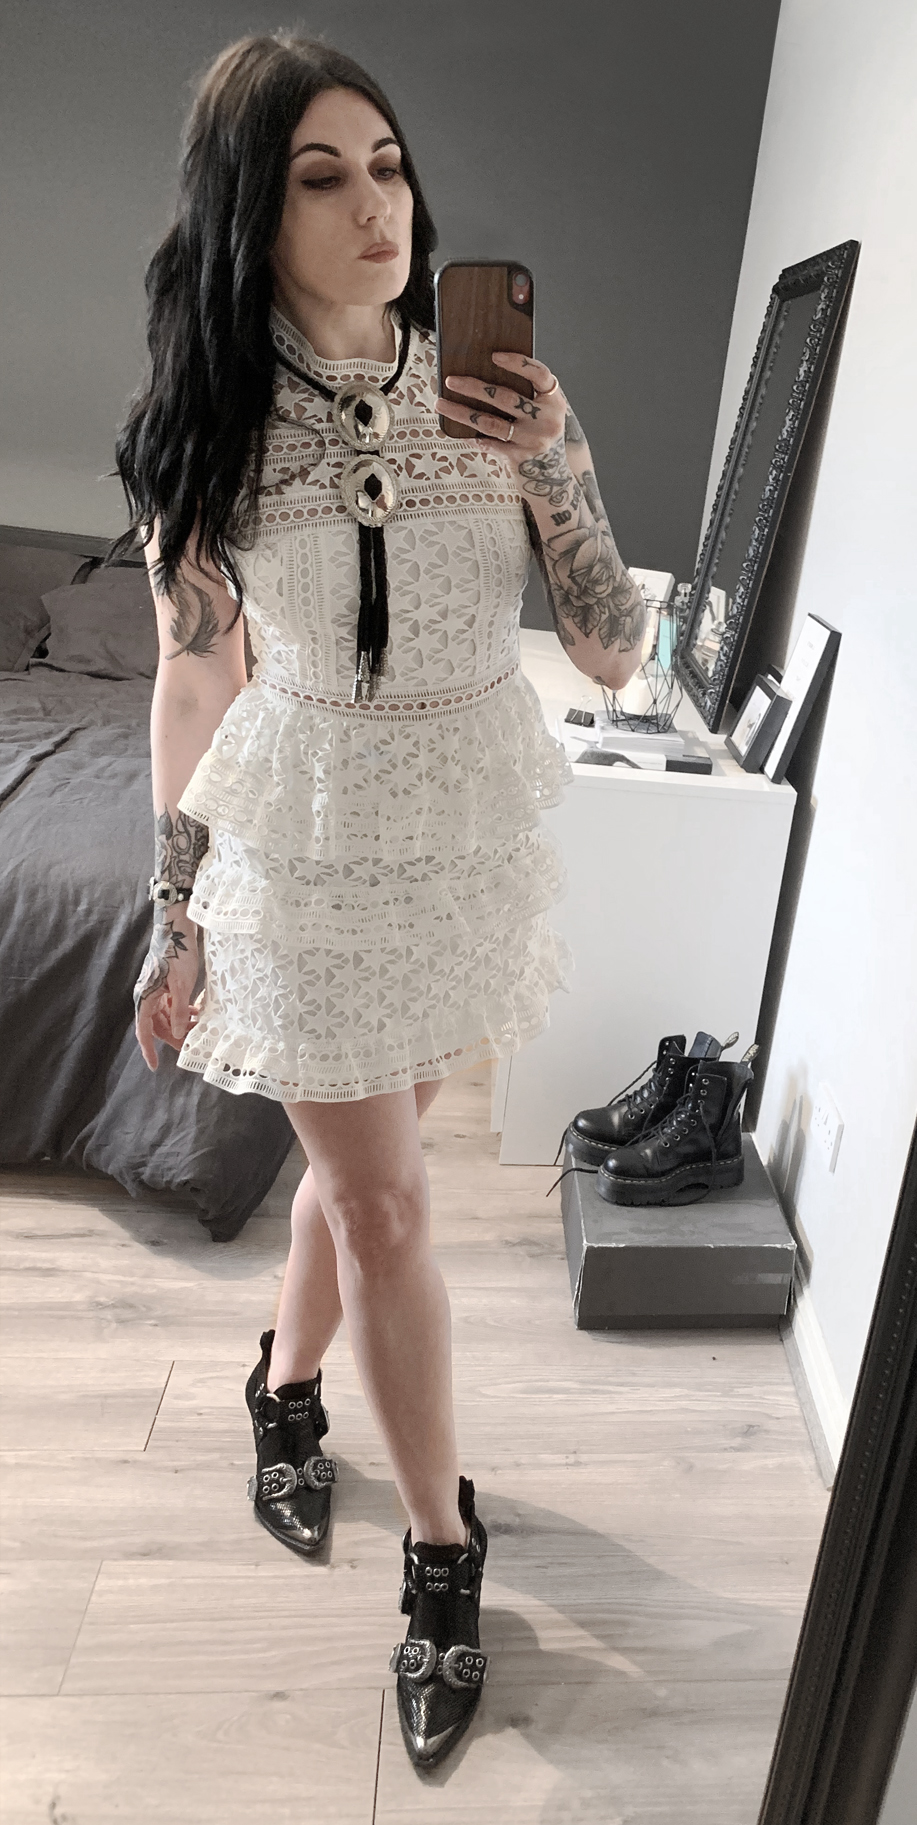 whitedress.jpg